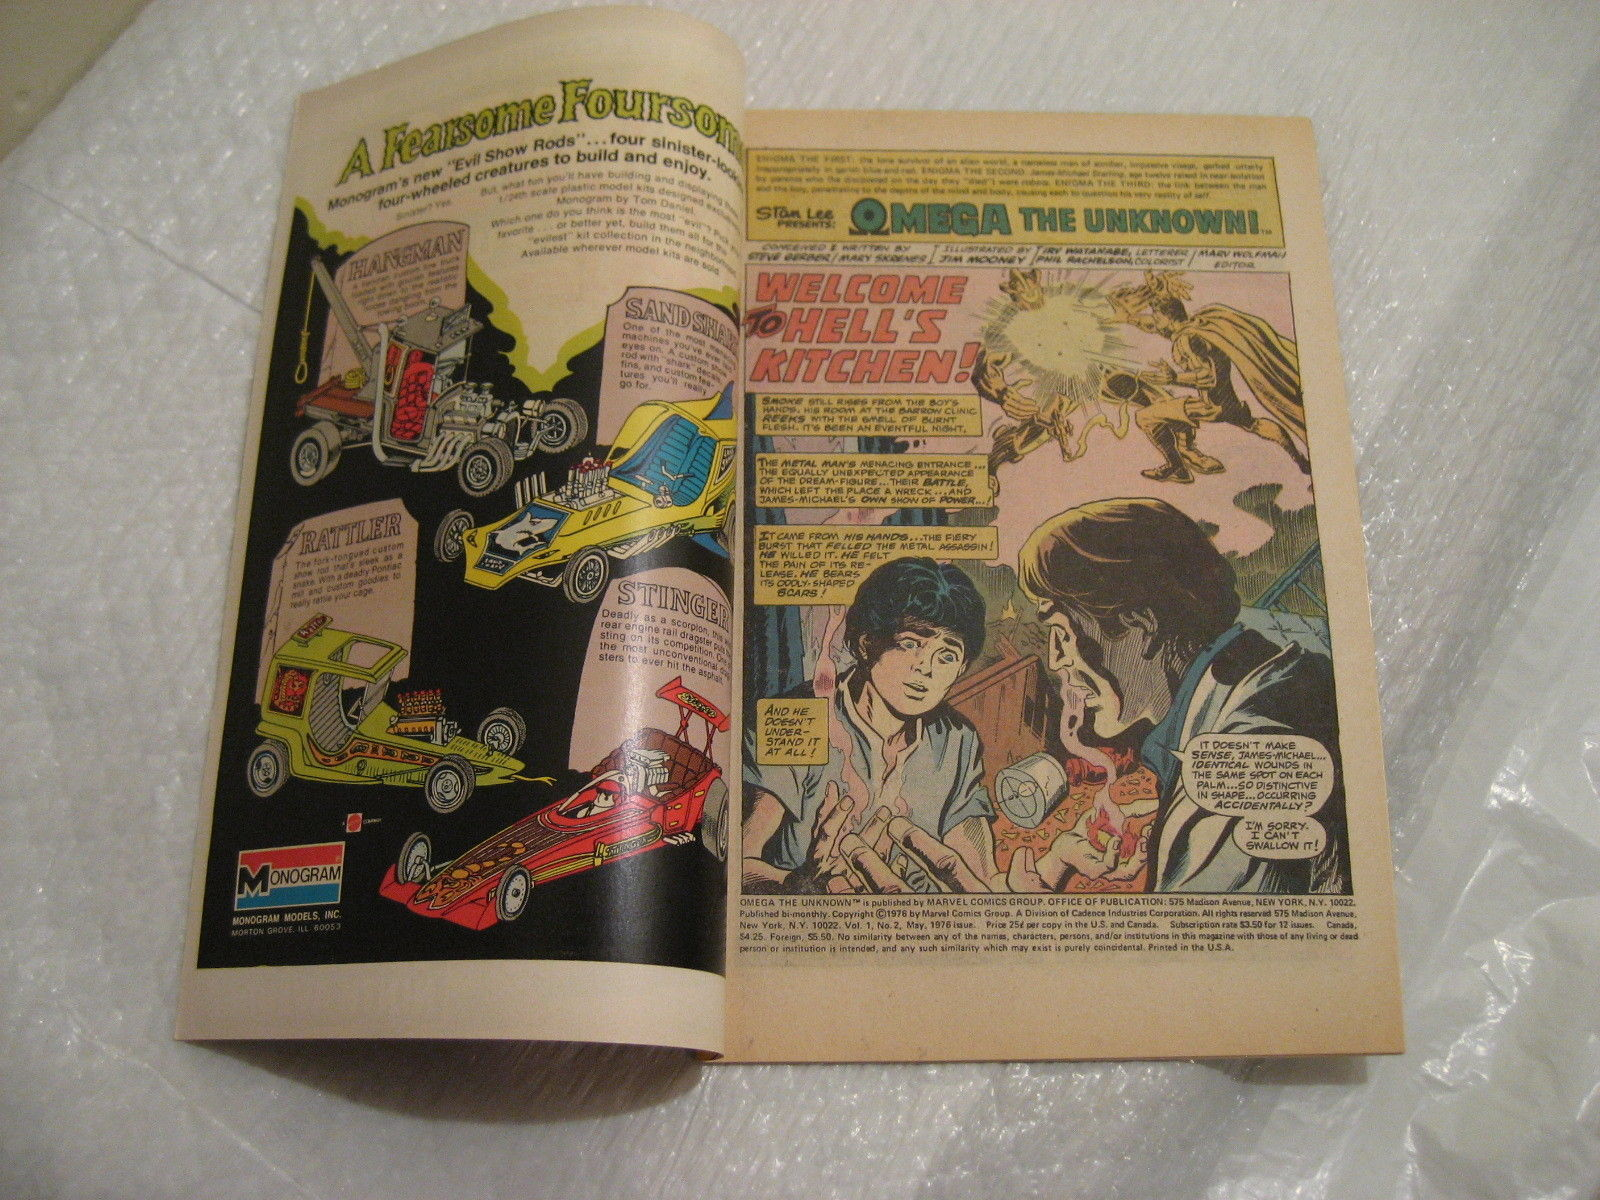 OMEGA THE UNKNOWN #2 marvel comics very fine condition 1976